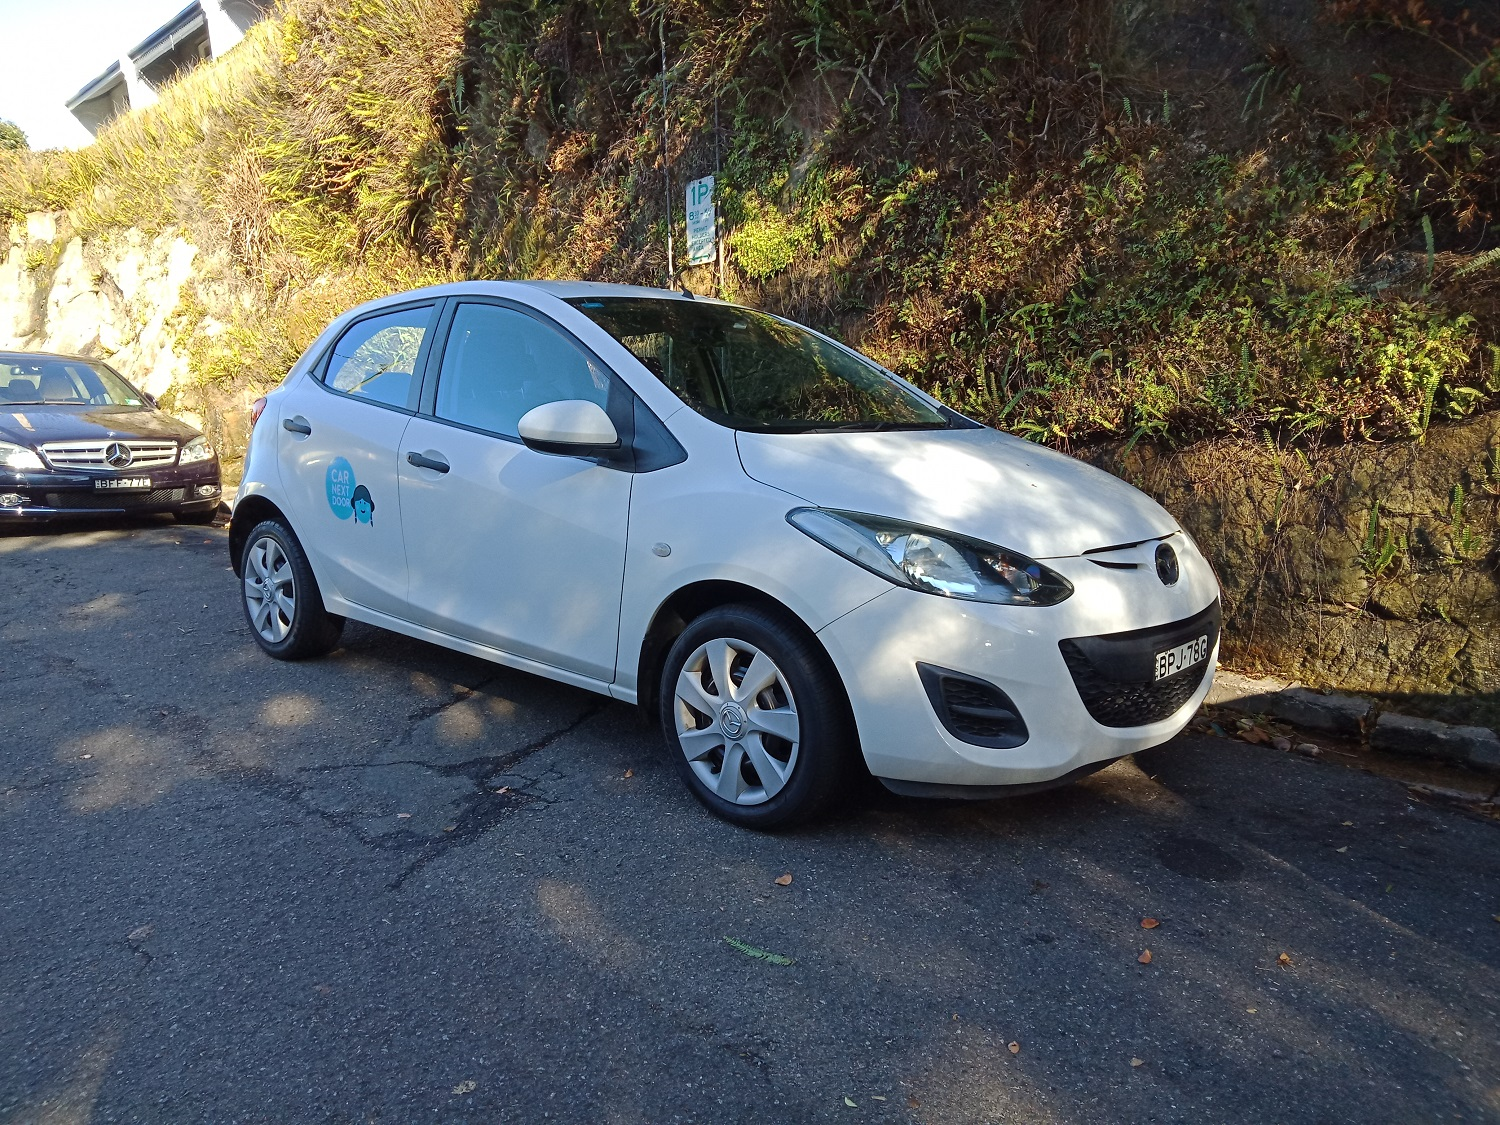 Picture of Althea's 2010 Mazda 200